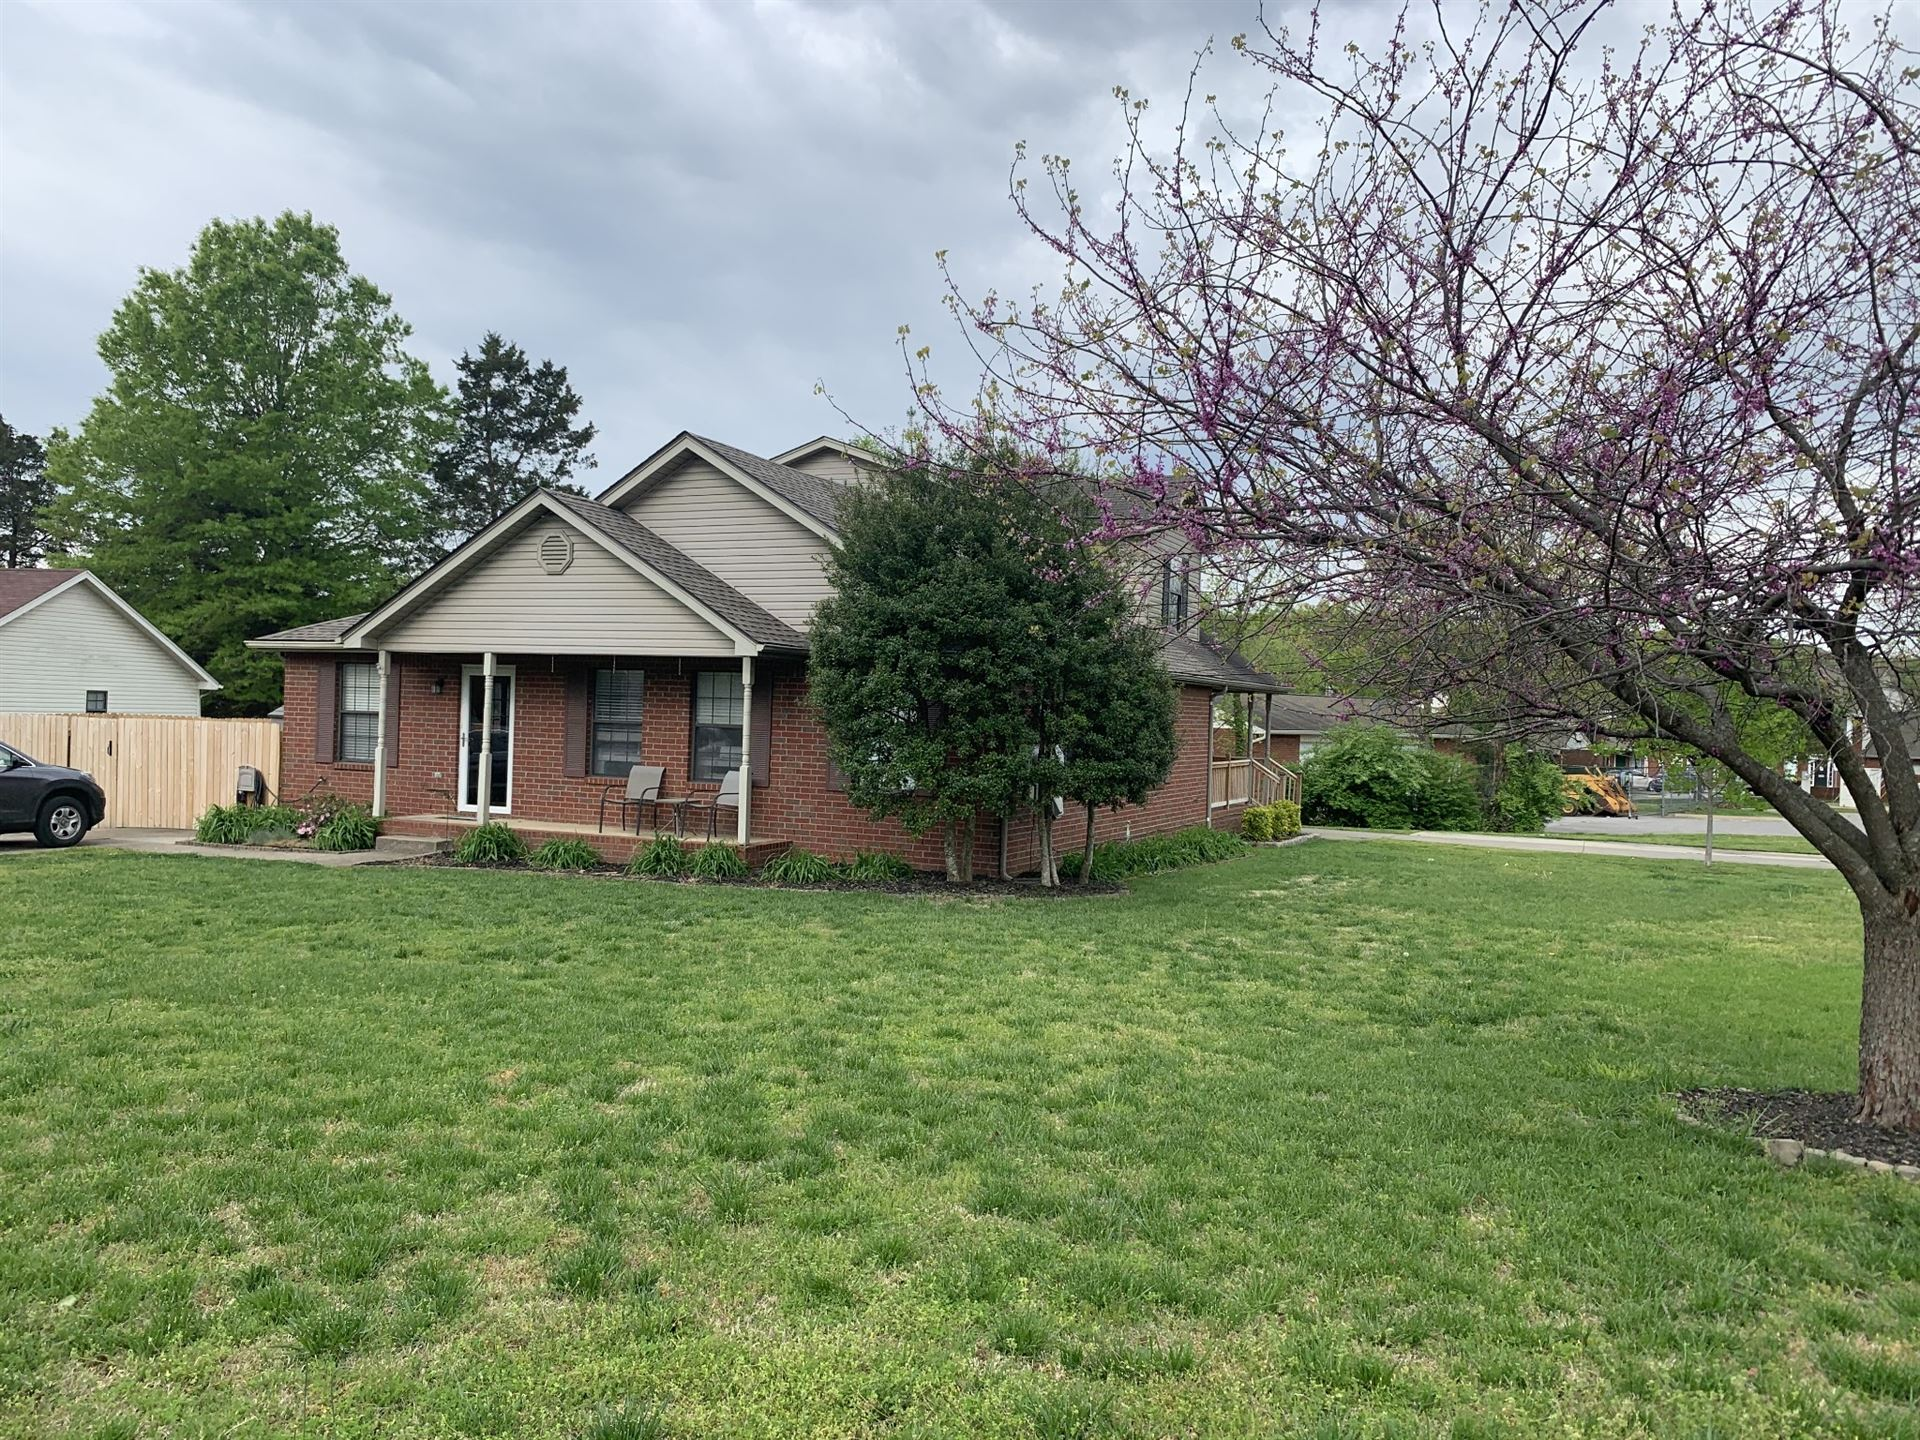 1302 Reinfield Ct, Smyrna, TN 37167 - MLS#: 2225299